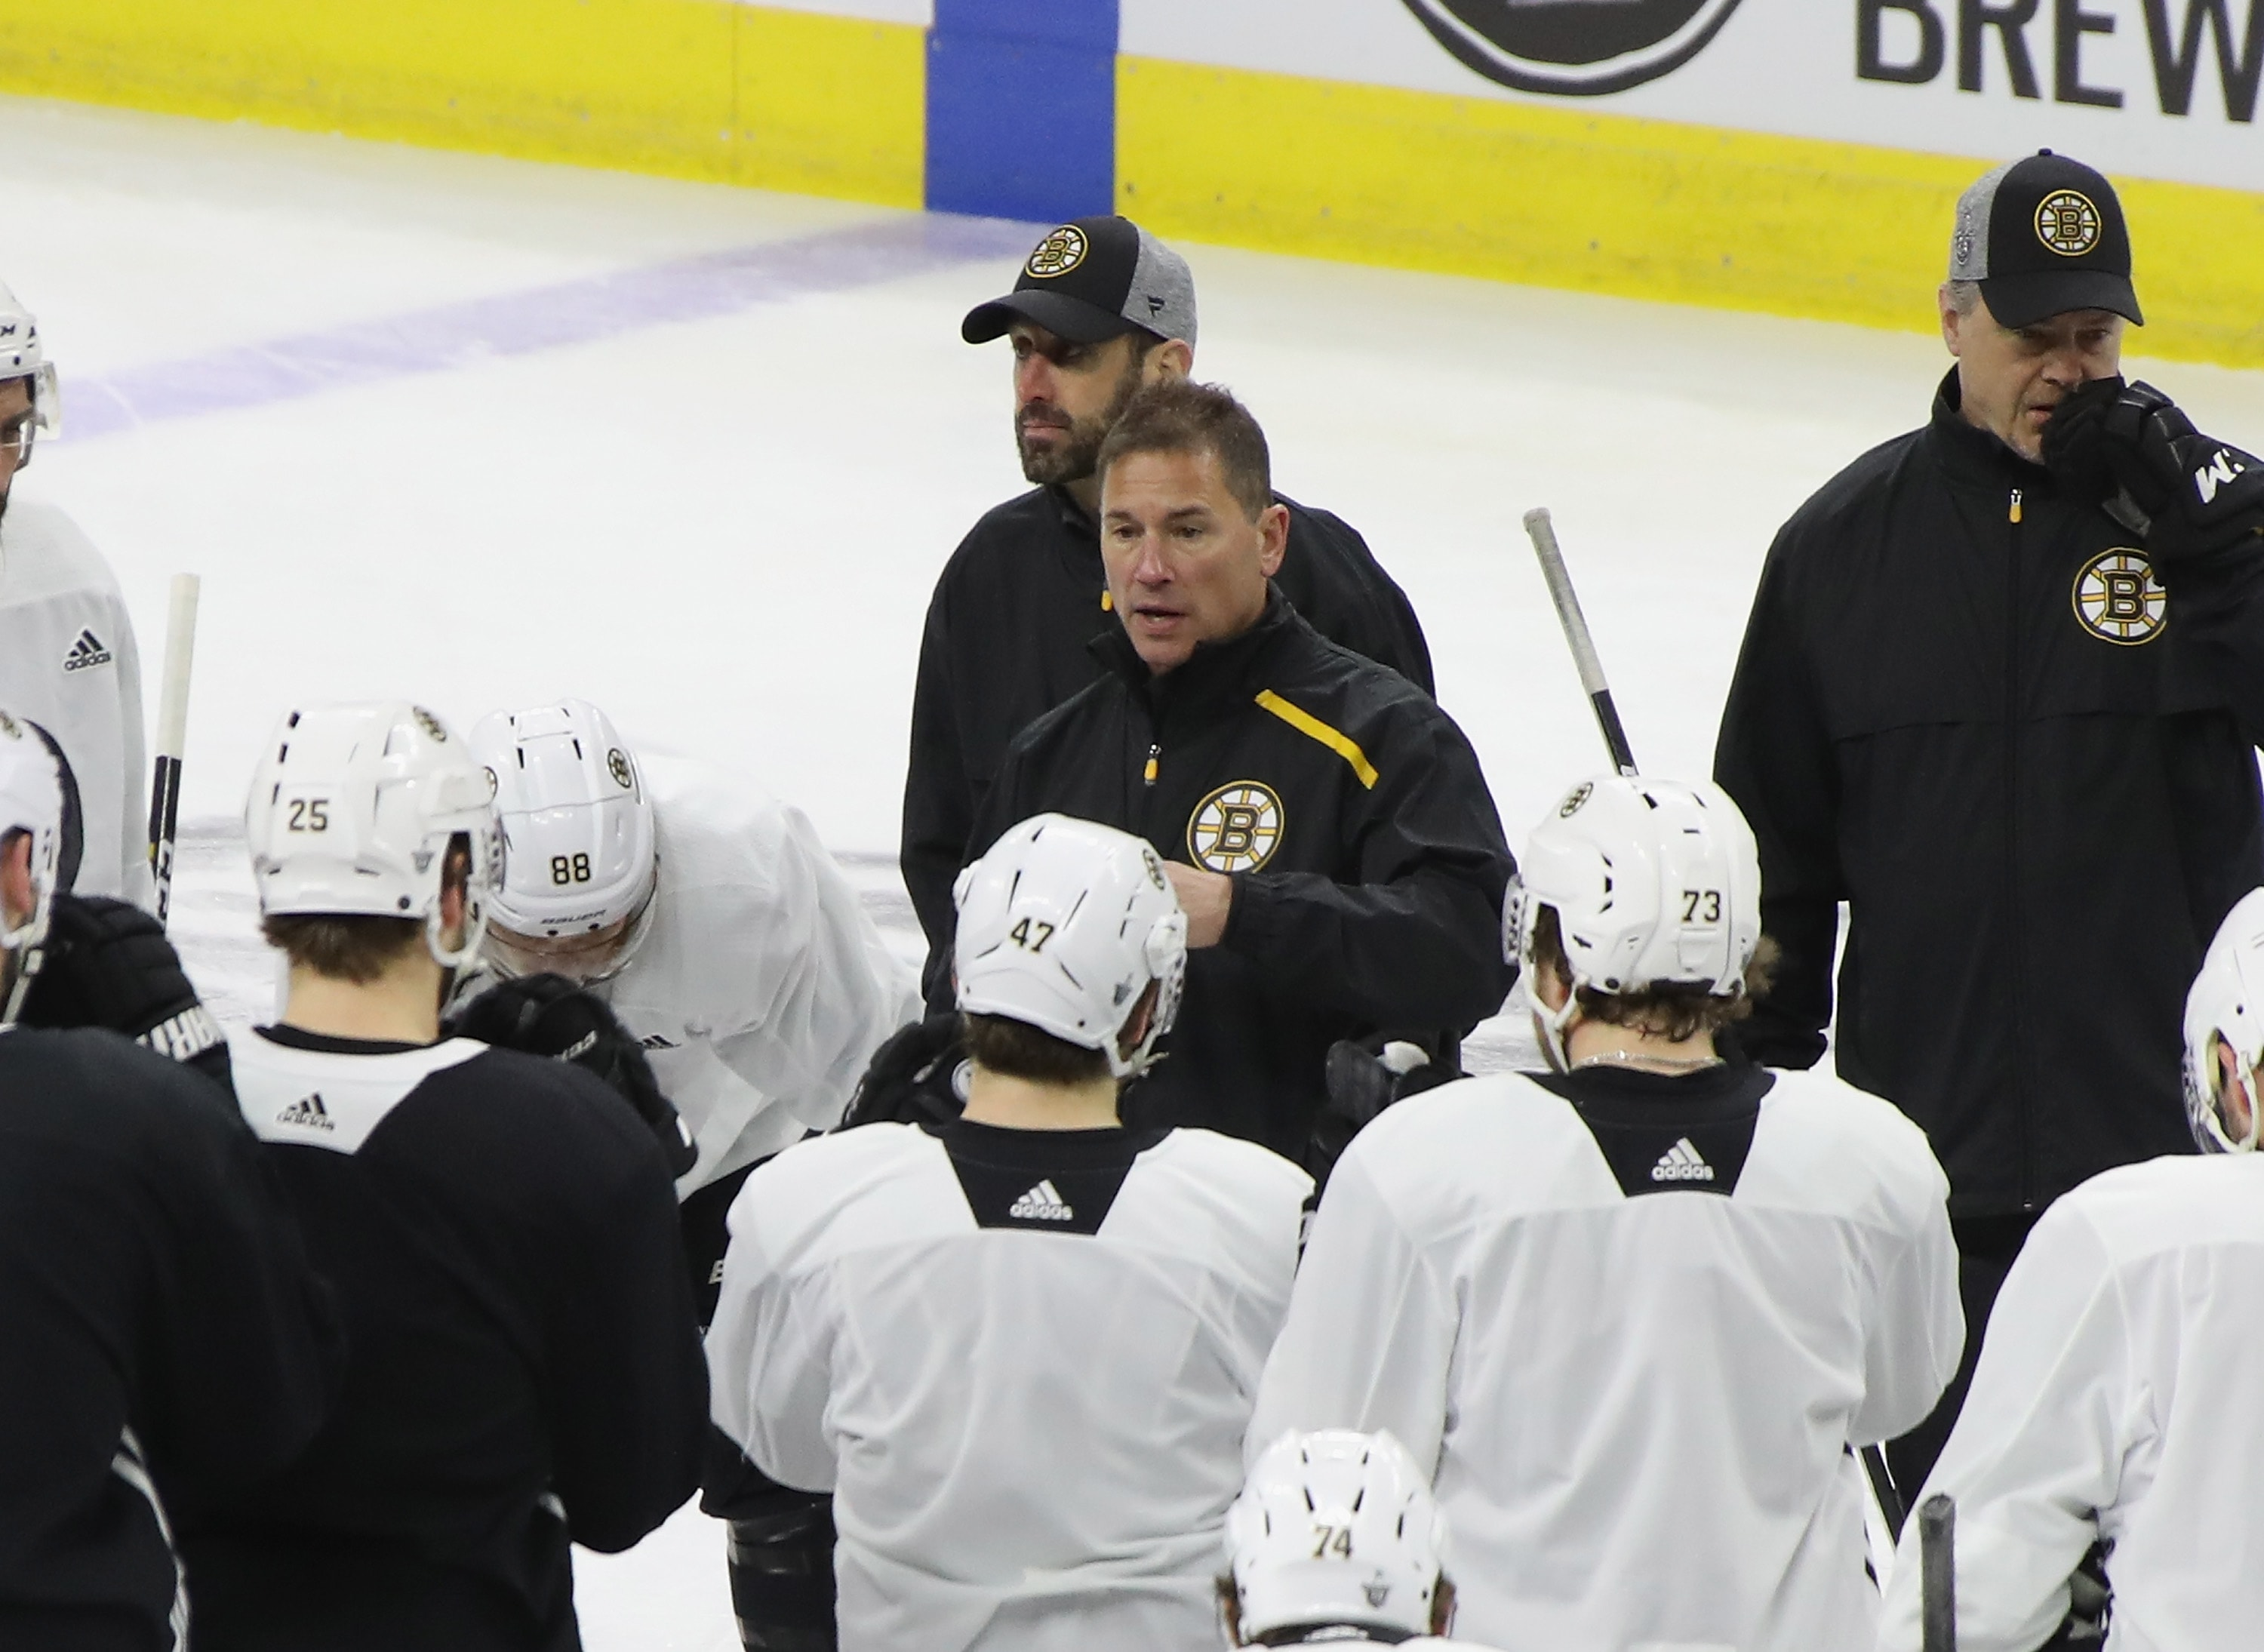 Head coach Bruce Cassidy of the Boston Bruins handles the morning skate prior to Game 3 of the Eastern Conference Final during the 2019 NHL Stanley Cup Playoffs at the PNC Bank Arena on May 14, 2019 in Raleigh, North Carolina. (Photo by Bruce Bennett/Getty Images)